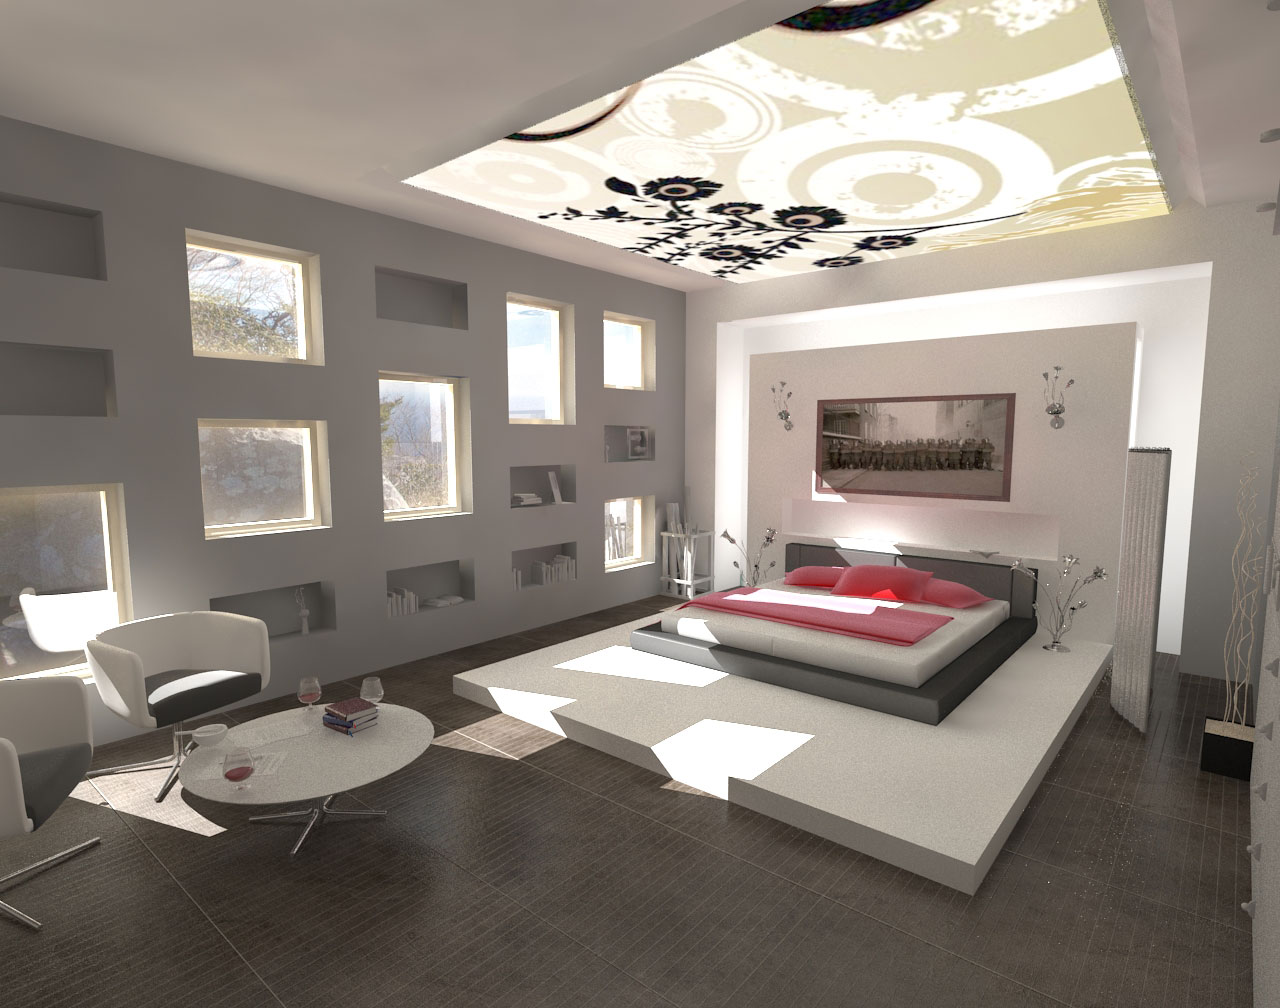 decorations minimalist design modern bedroom interior ForInterior Designs For Bedrooms Ideas